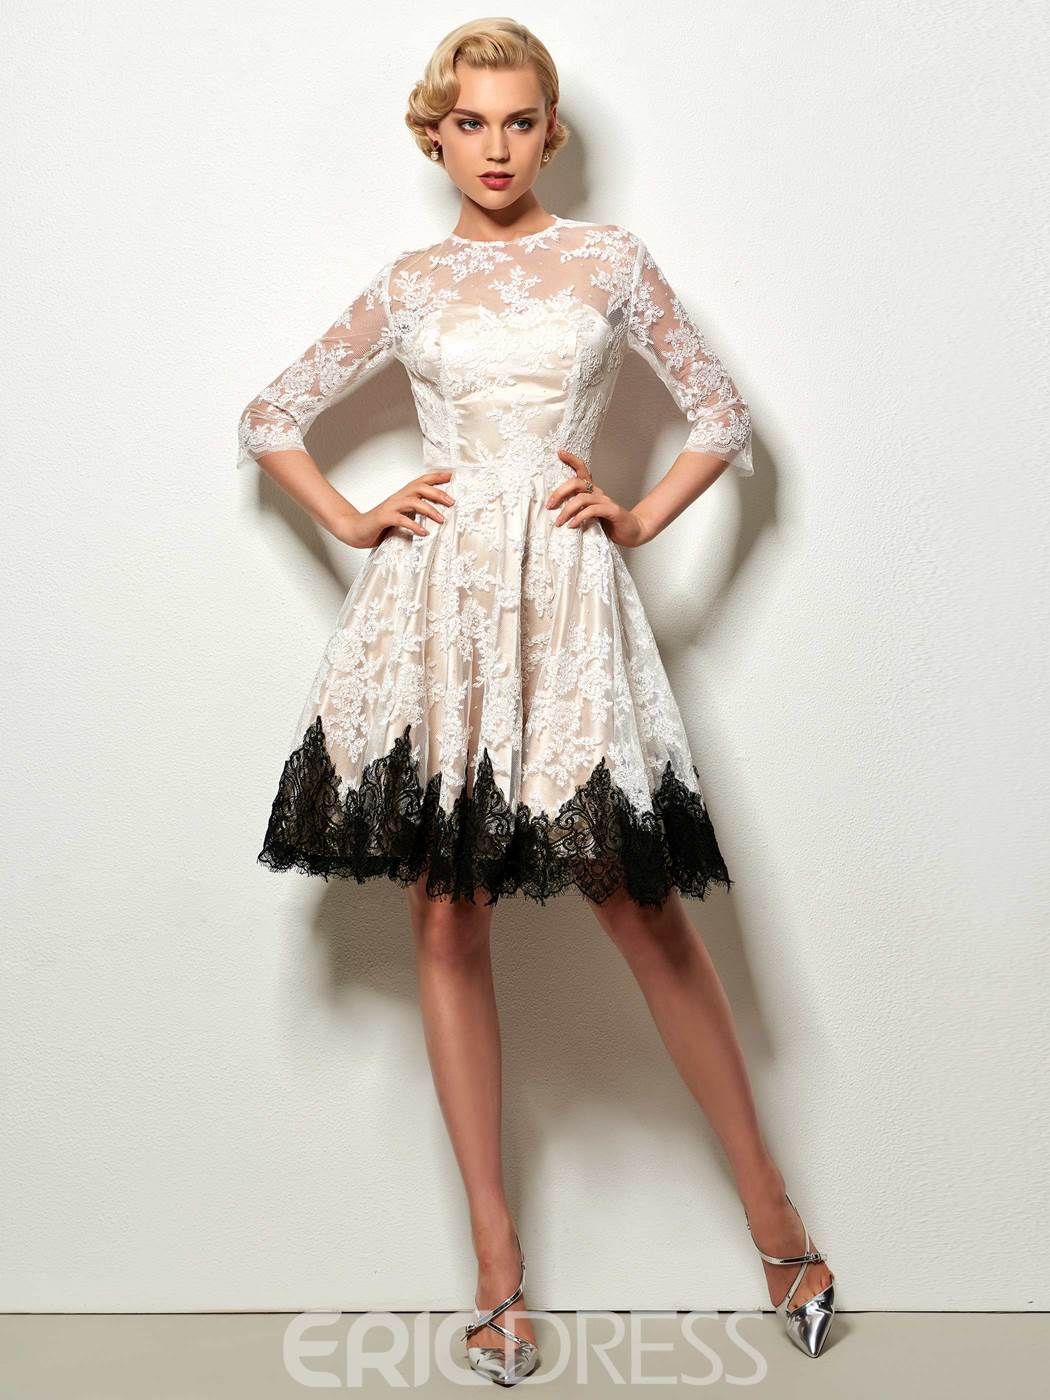 Ericdress A Line Lace Short Cocktail Dress With Half Sleeve 12674466 ...